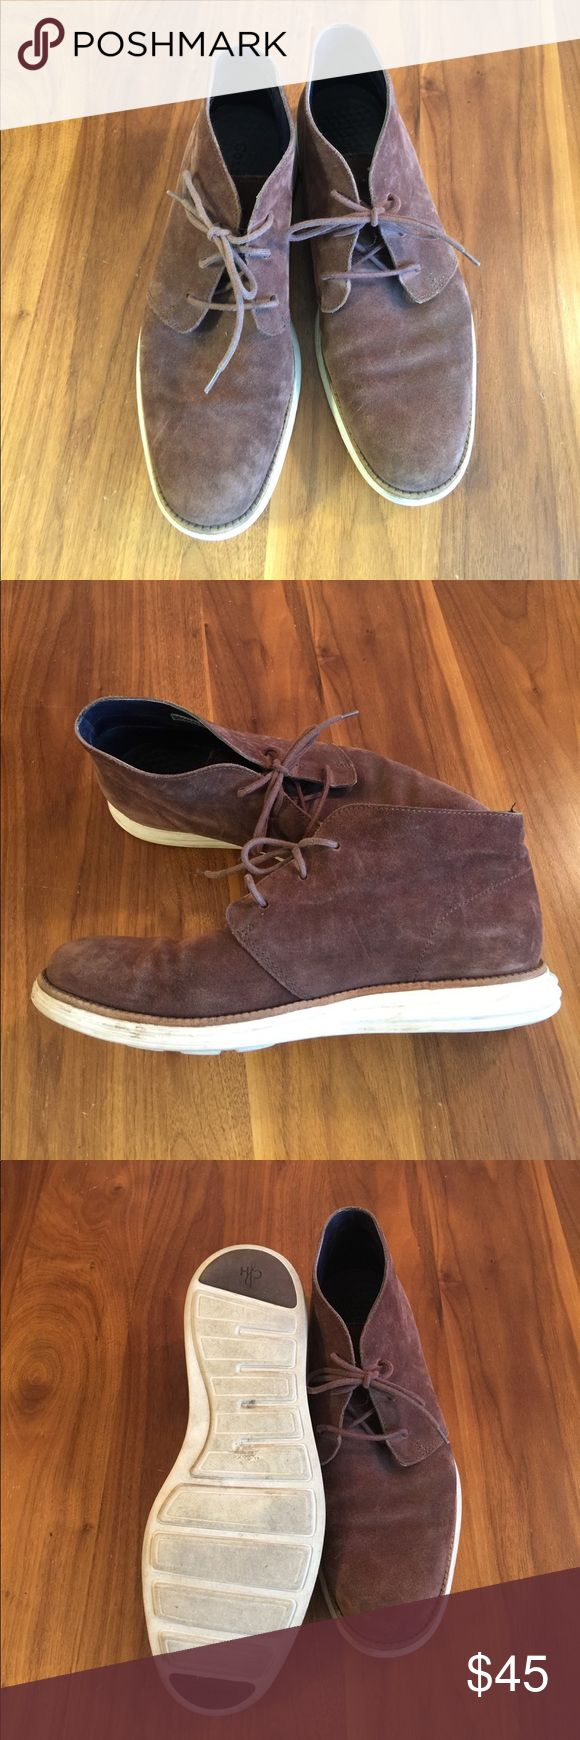 Cole Haan Lunargrand Suede Chukka Boots Brown suede Chukka Boots. Light wear with minor smudges and rub marks. Cole Haan Shoes Chukka Boots